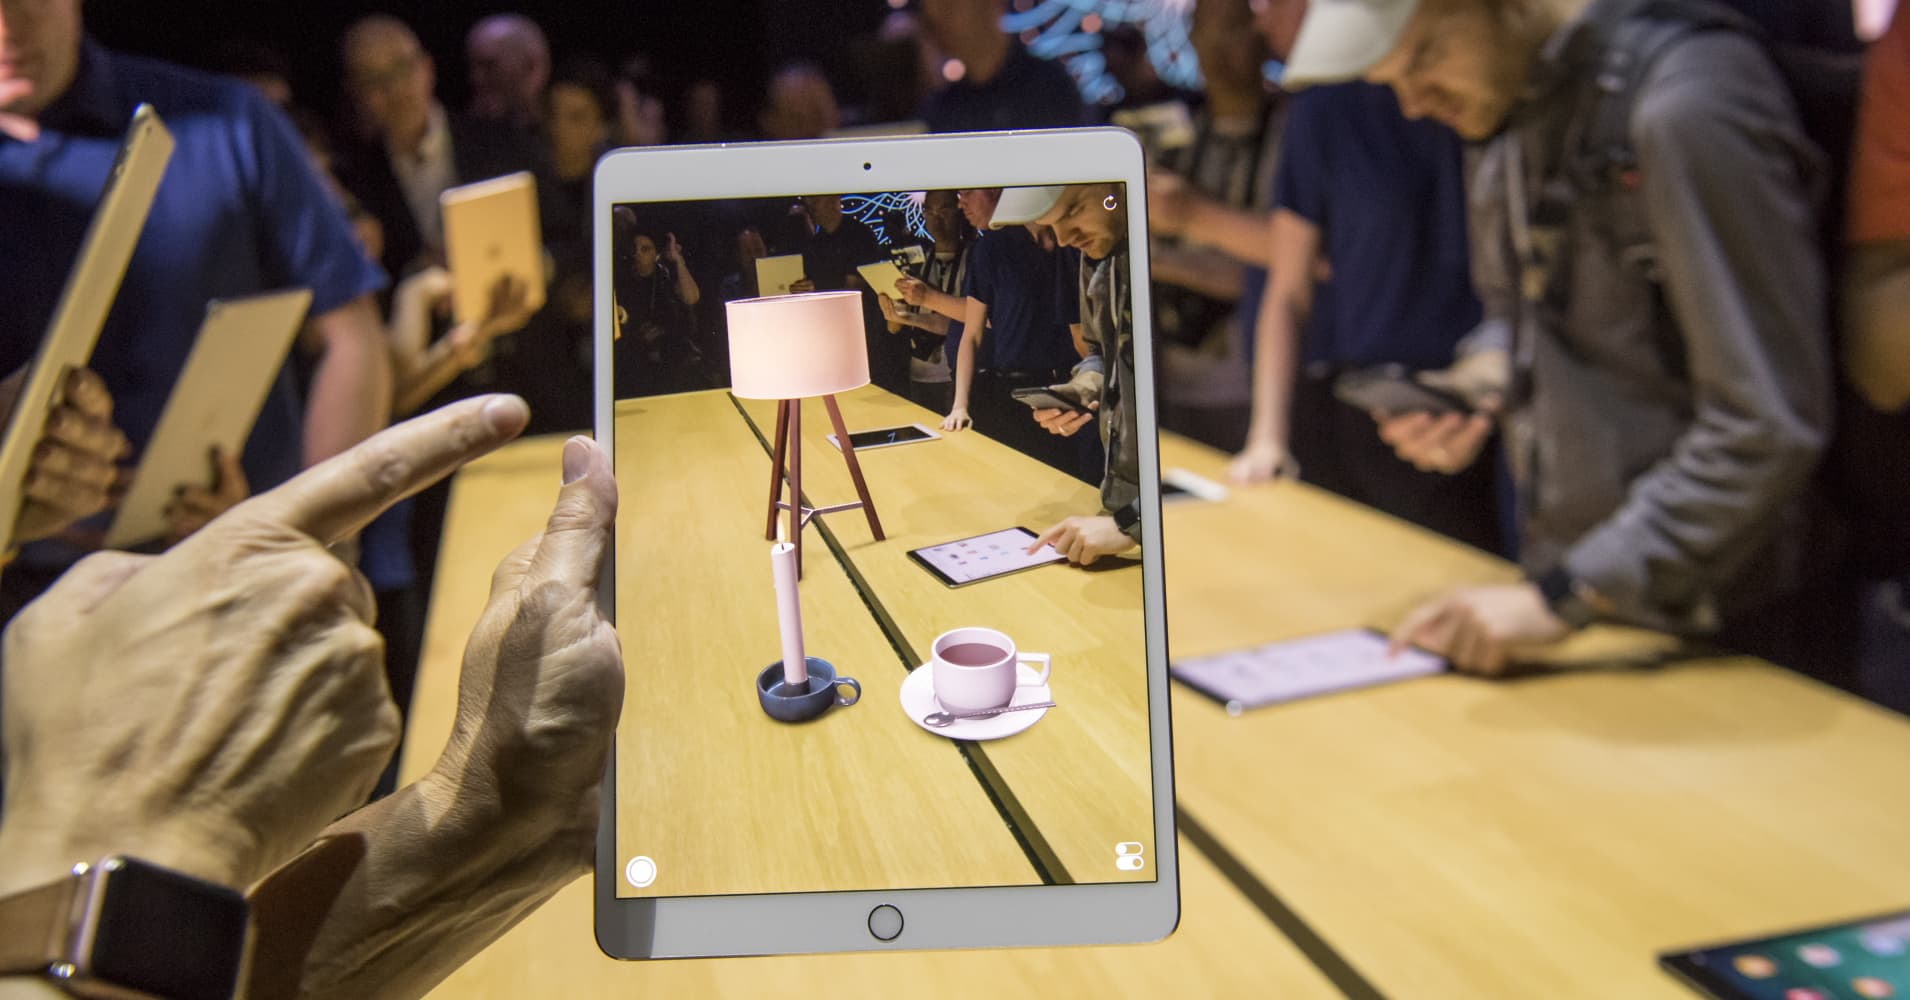 Apple will probably bring AR to the mainstream before Google